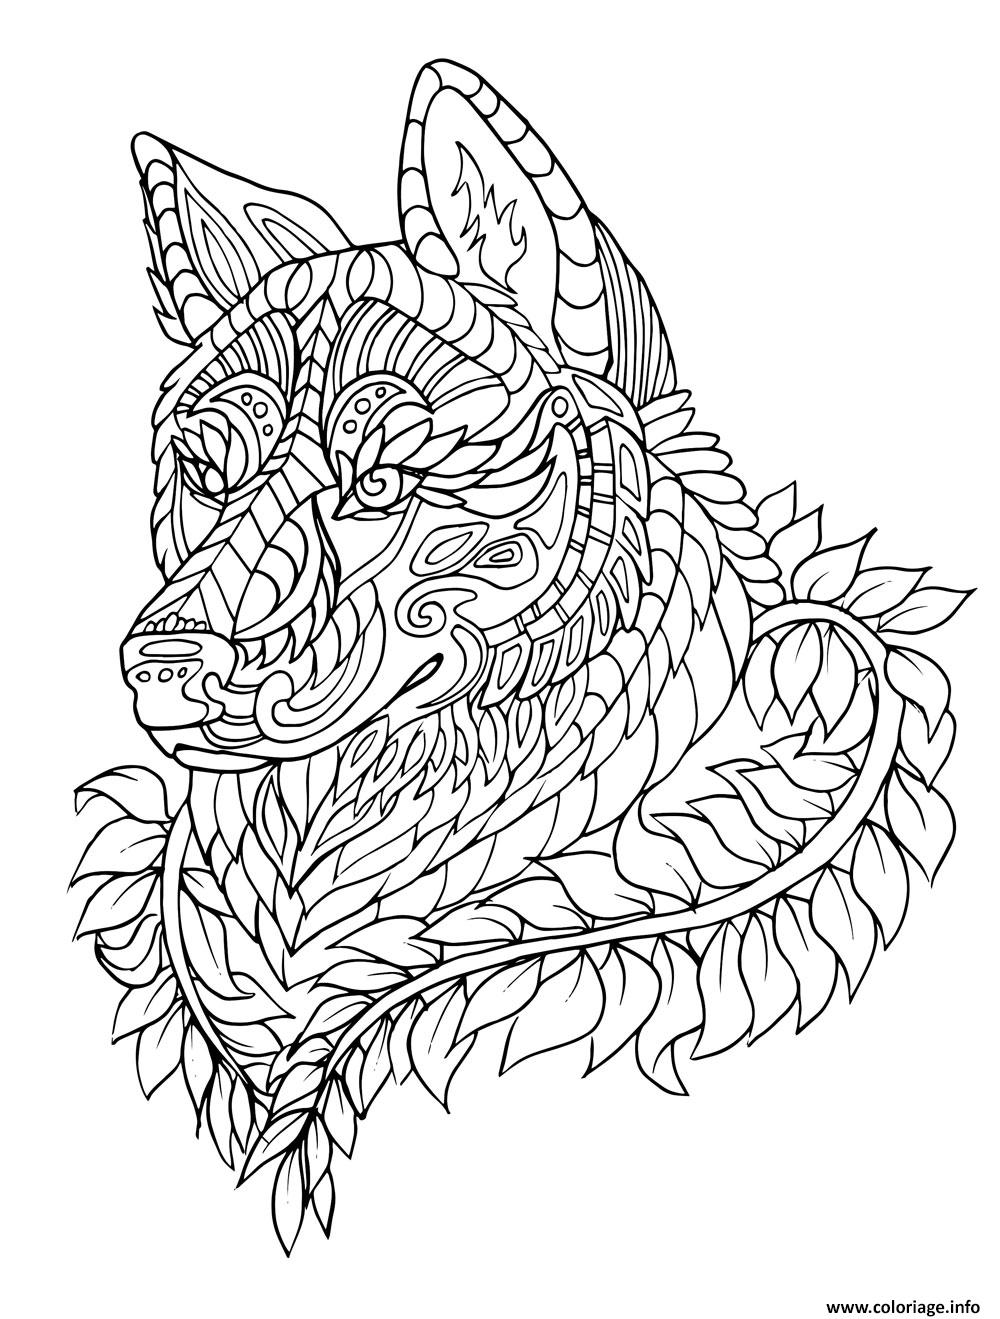 Coloriage Adulte Loup.Coloriage Loup Wolf Adulte Zentangle Jecolorie Com